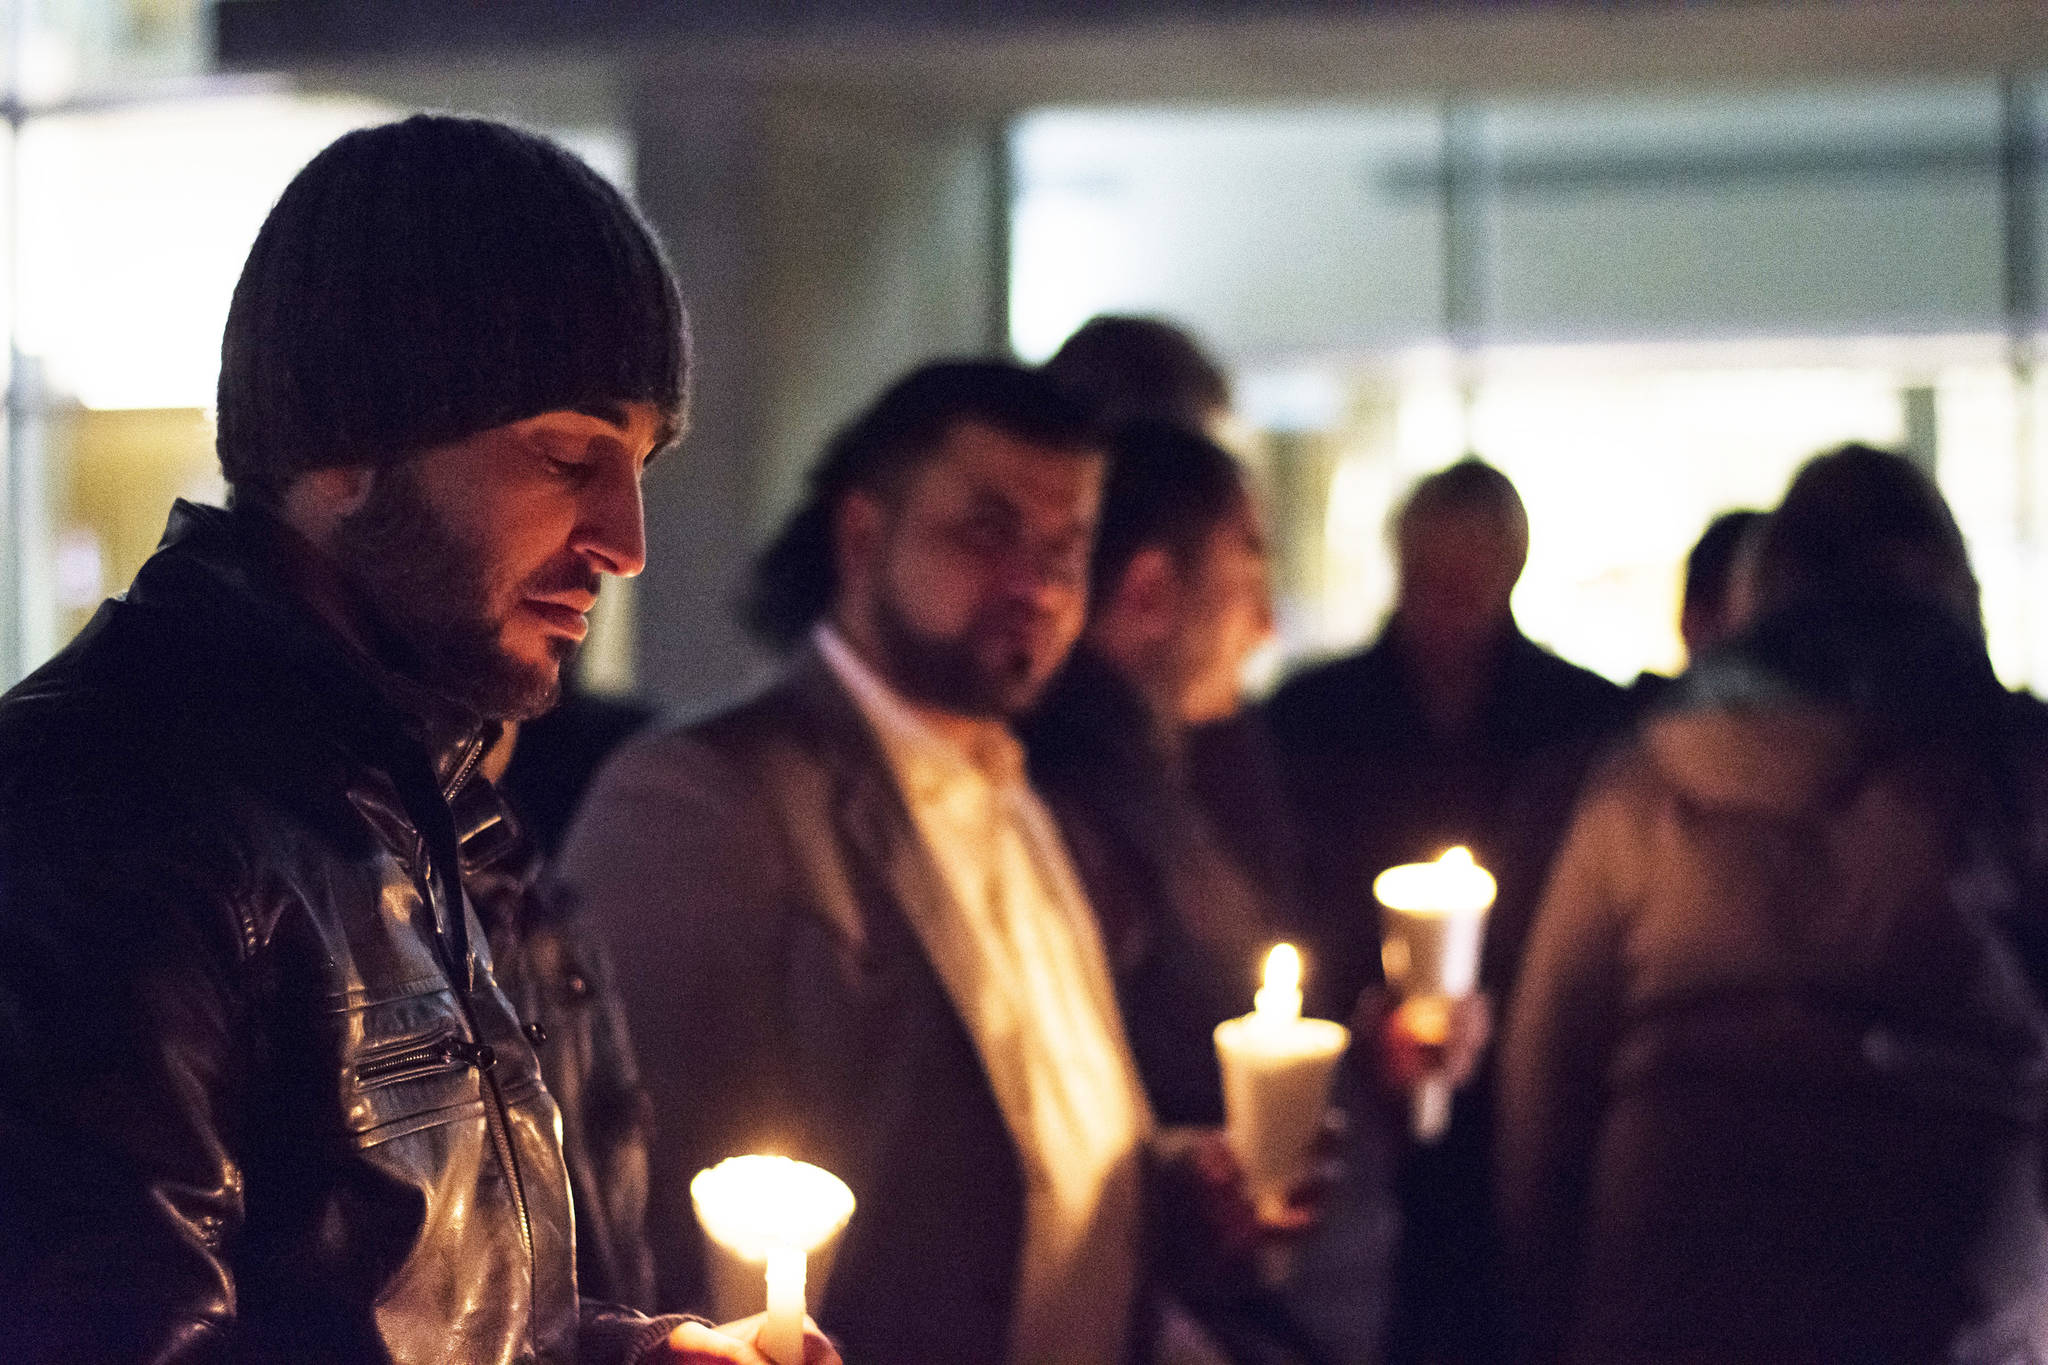 Mustafa Zakreet, Salmon Arm's first Syrian Refugee has a moment of reflection at the vigil for the victims of the Quebec City mosque shooting on Monday, Jan. 30.